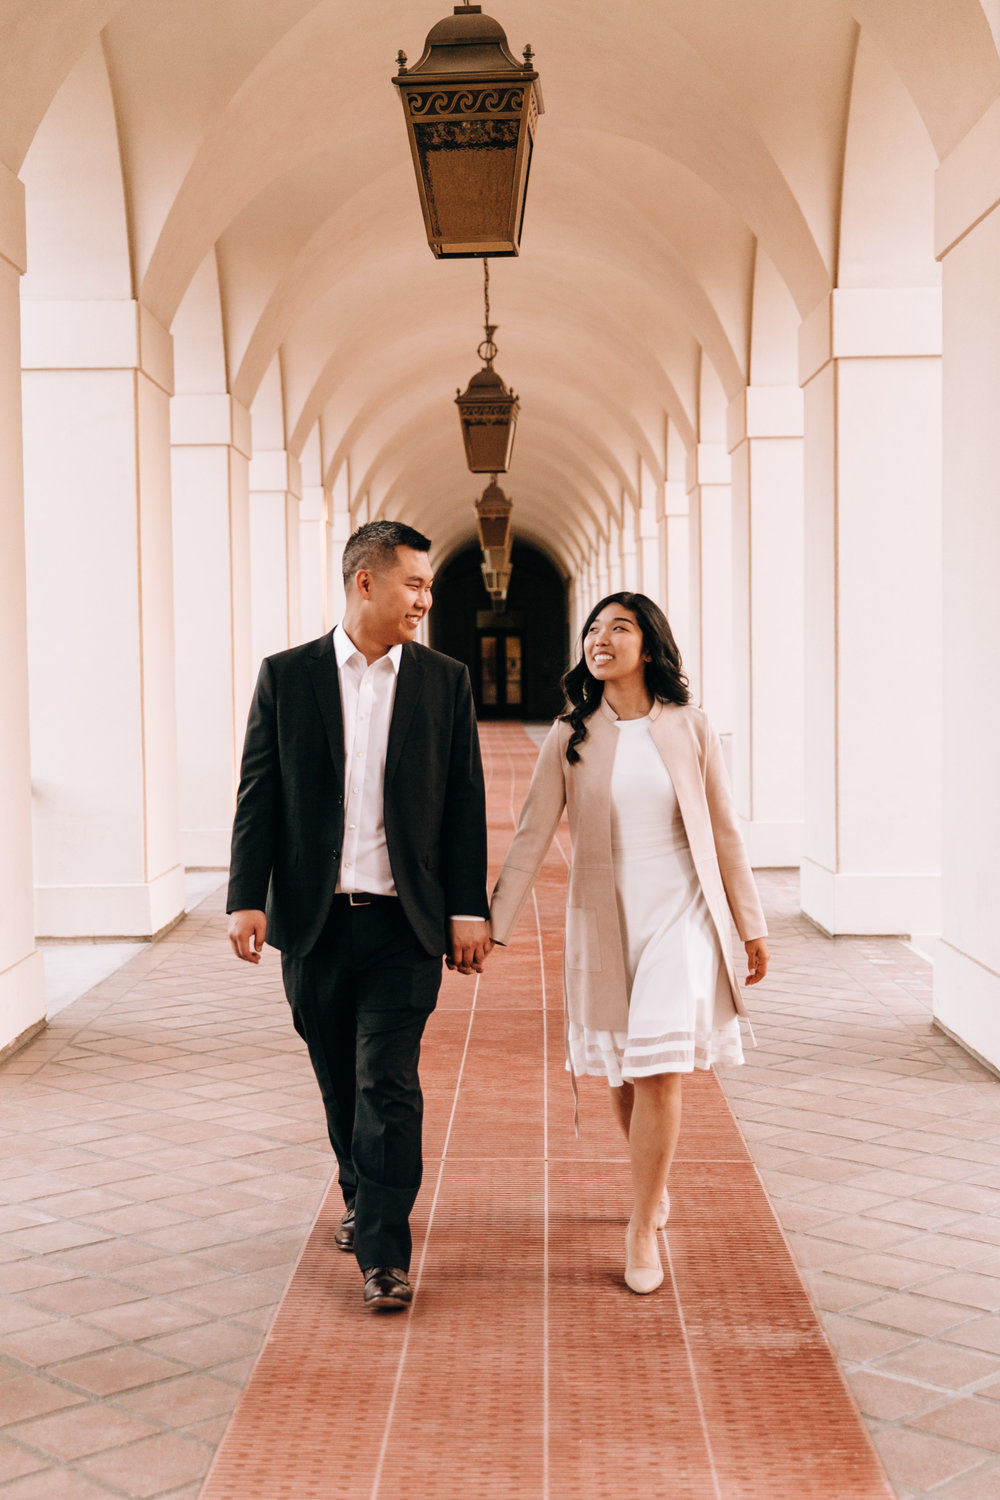 Pasadena engagement photographer, Southern California engagement photographer, Los Angeles engagement photographer, Old Town Pasadena engagement session, LA engagement, SoCal engagement photographer